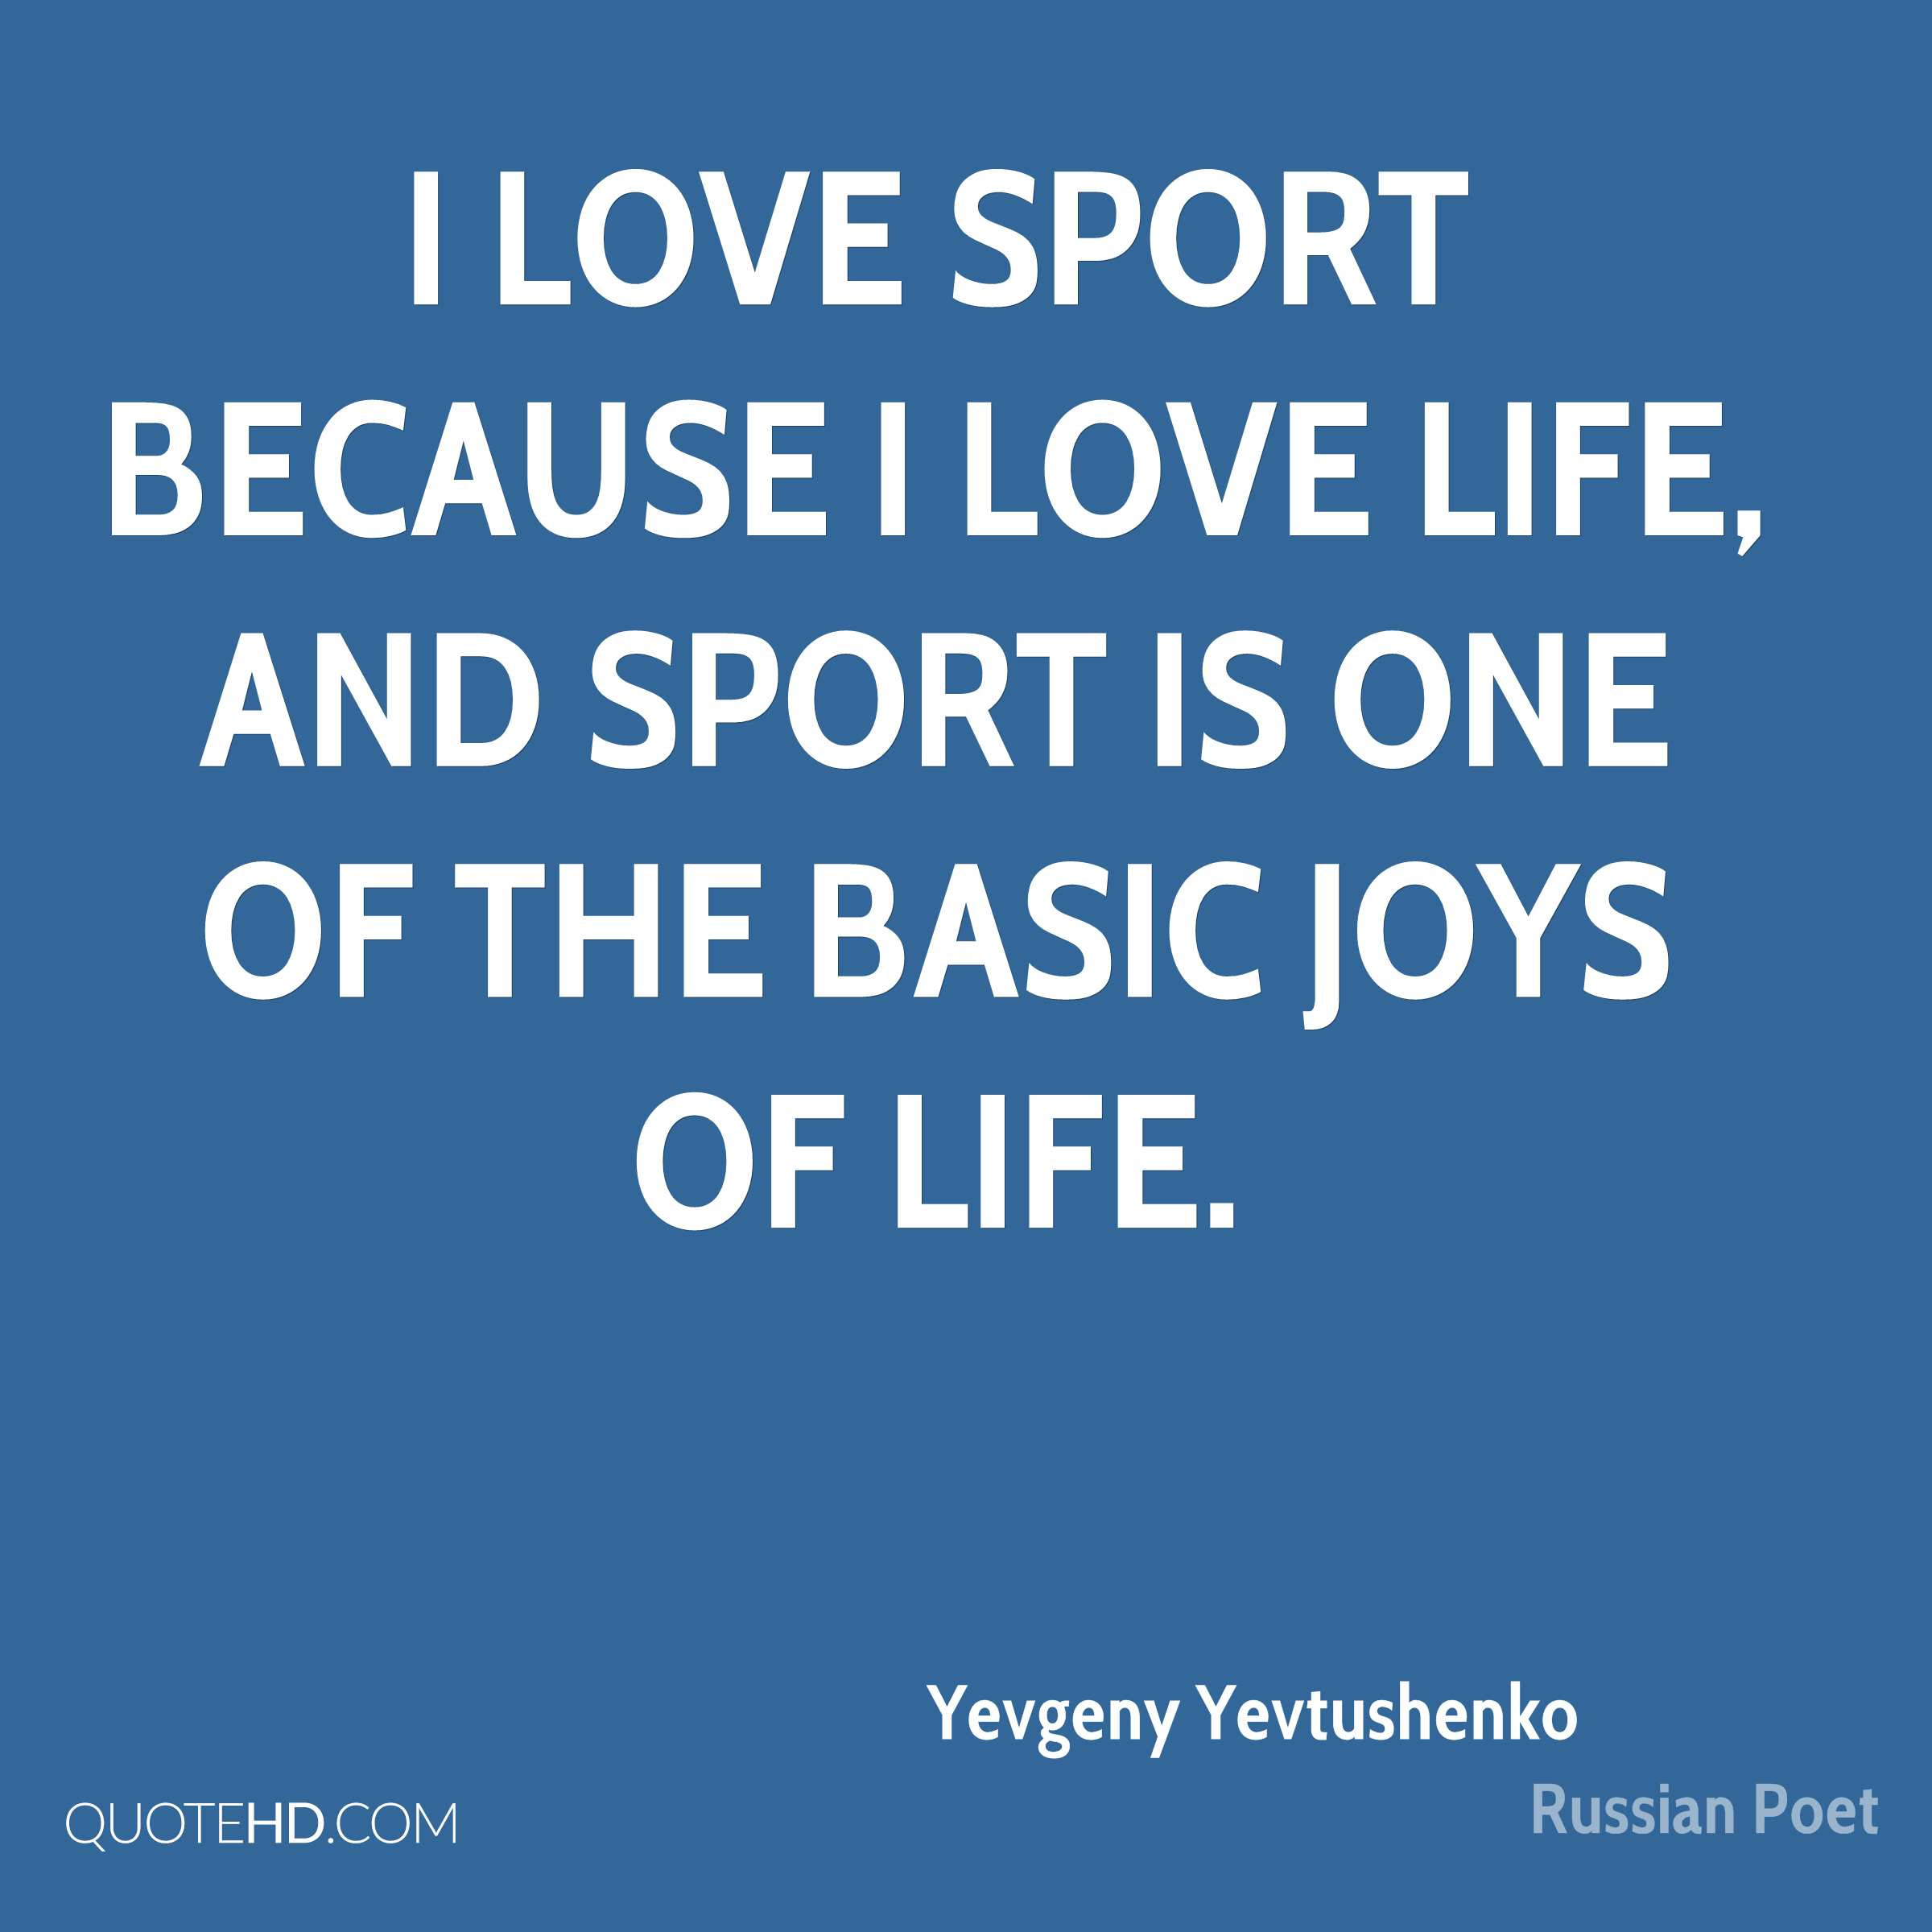 I love sport because I love life and sport is one of the basic joys